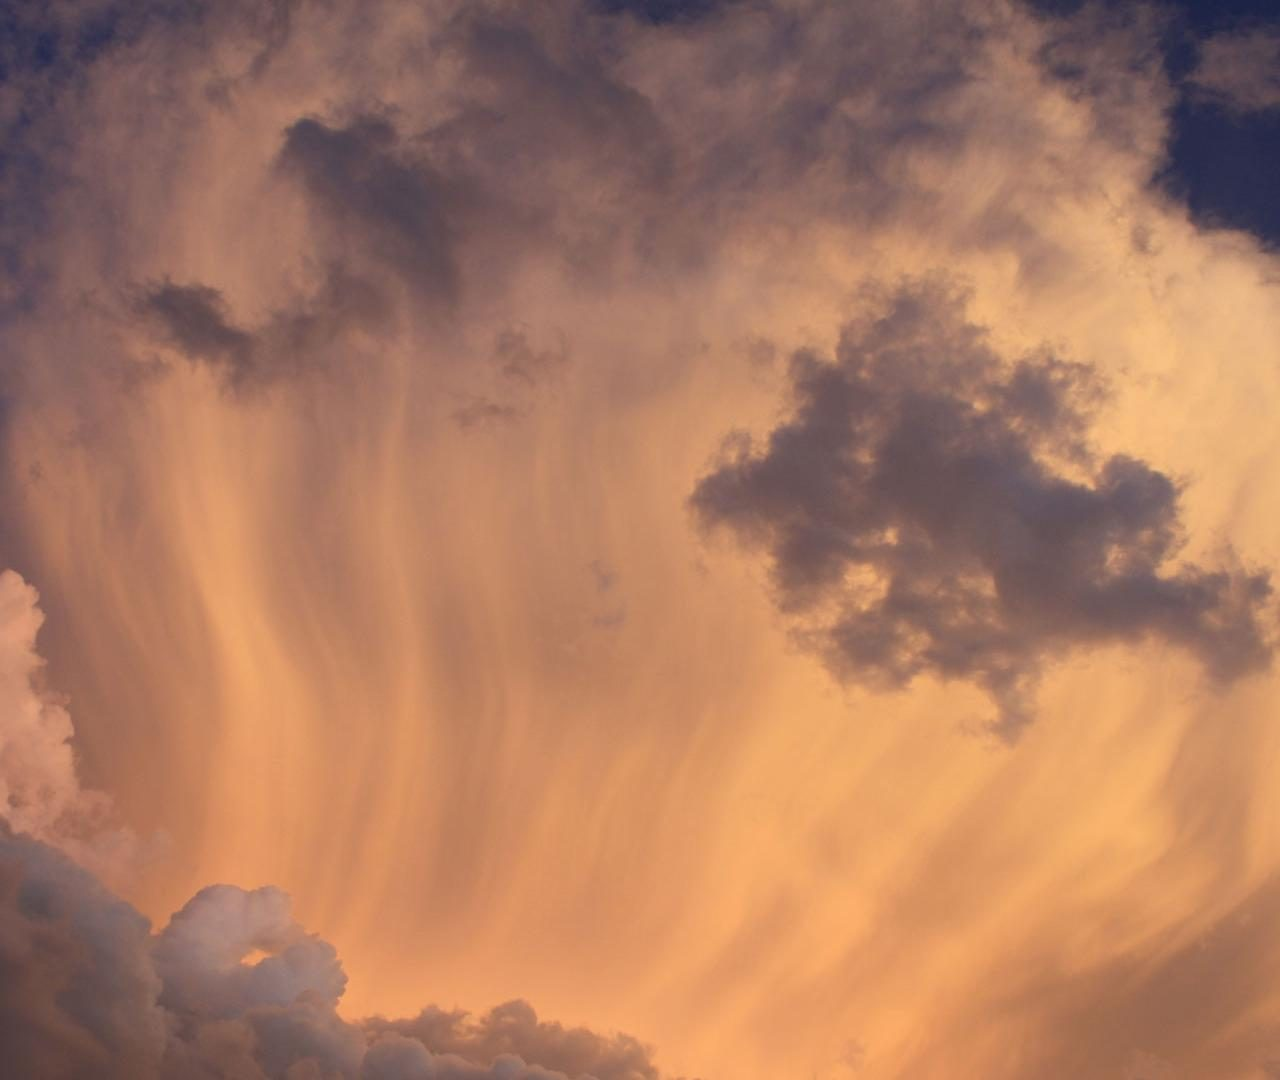 Hd Sky Layer Close Up Background Hd Wallpapers Hd